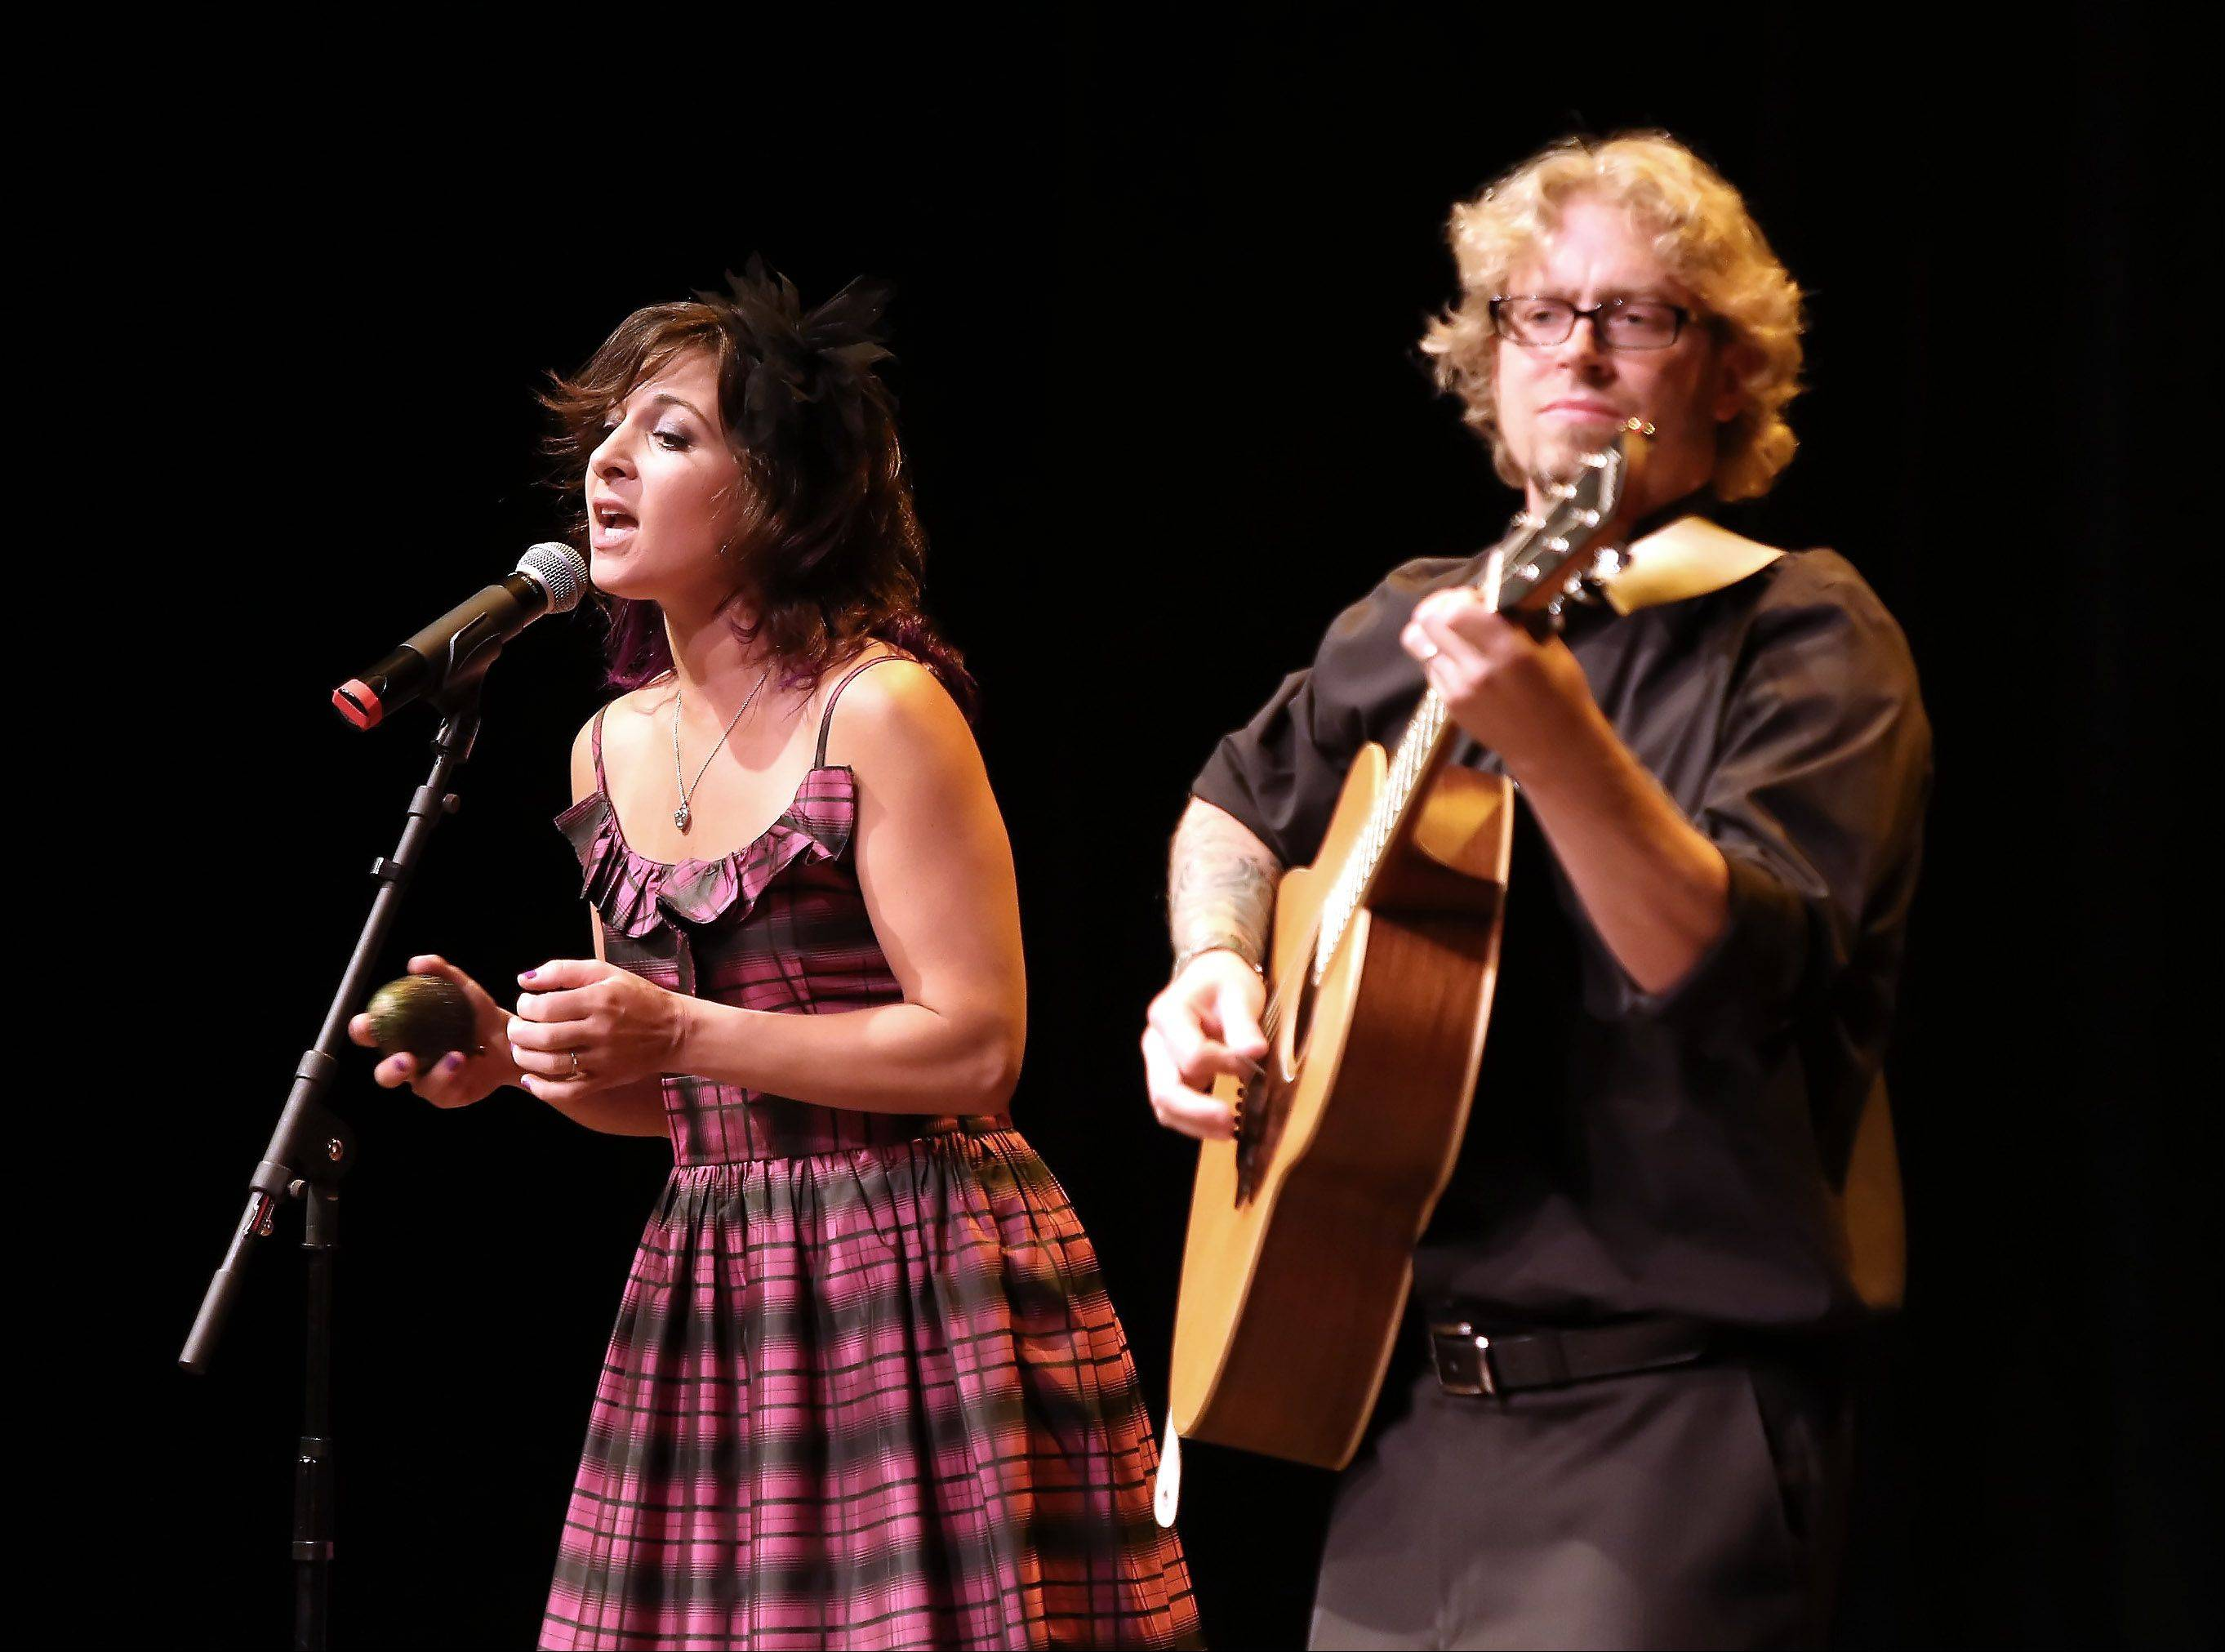 Karen and Sean Slavin of Woodstock perform during the first round of finalists for the Suburban Chicago's Got Talent competition Sunday night at the Metropolis Performing Arts Centre in Arlington Heights. The summer-long talent contest is presented by the Daily Herald and sponsored by the Arlington Heights Chamber of Commerce.